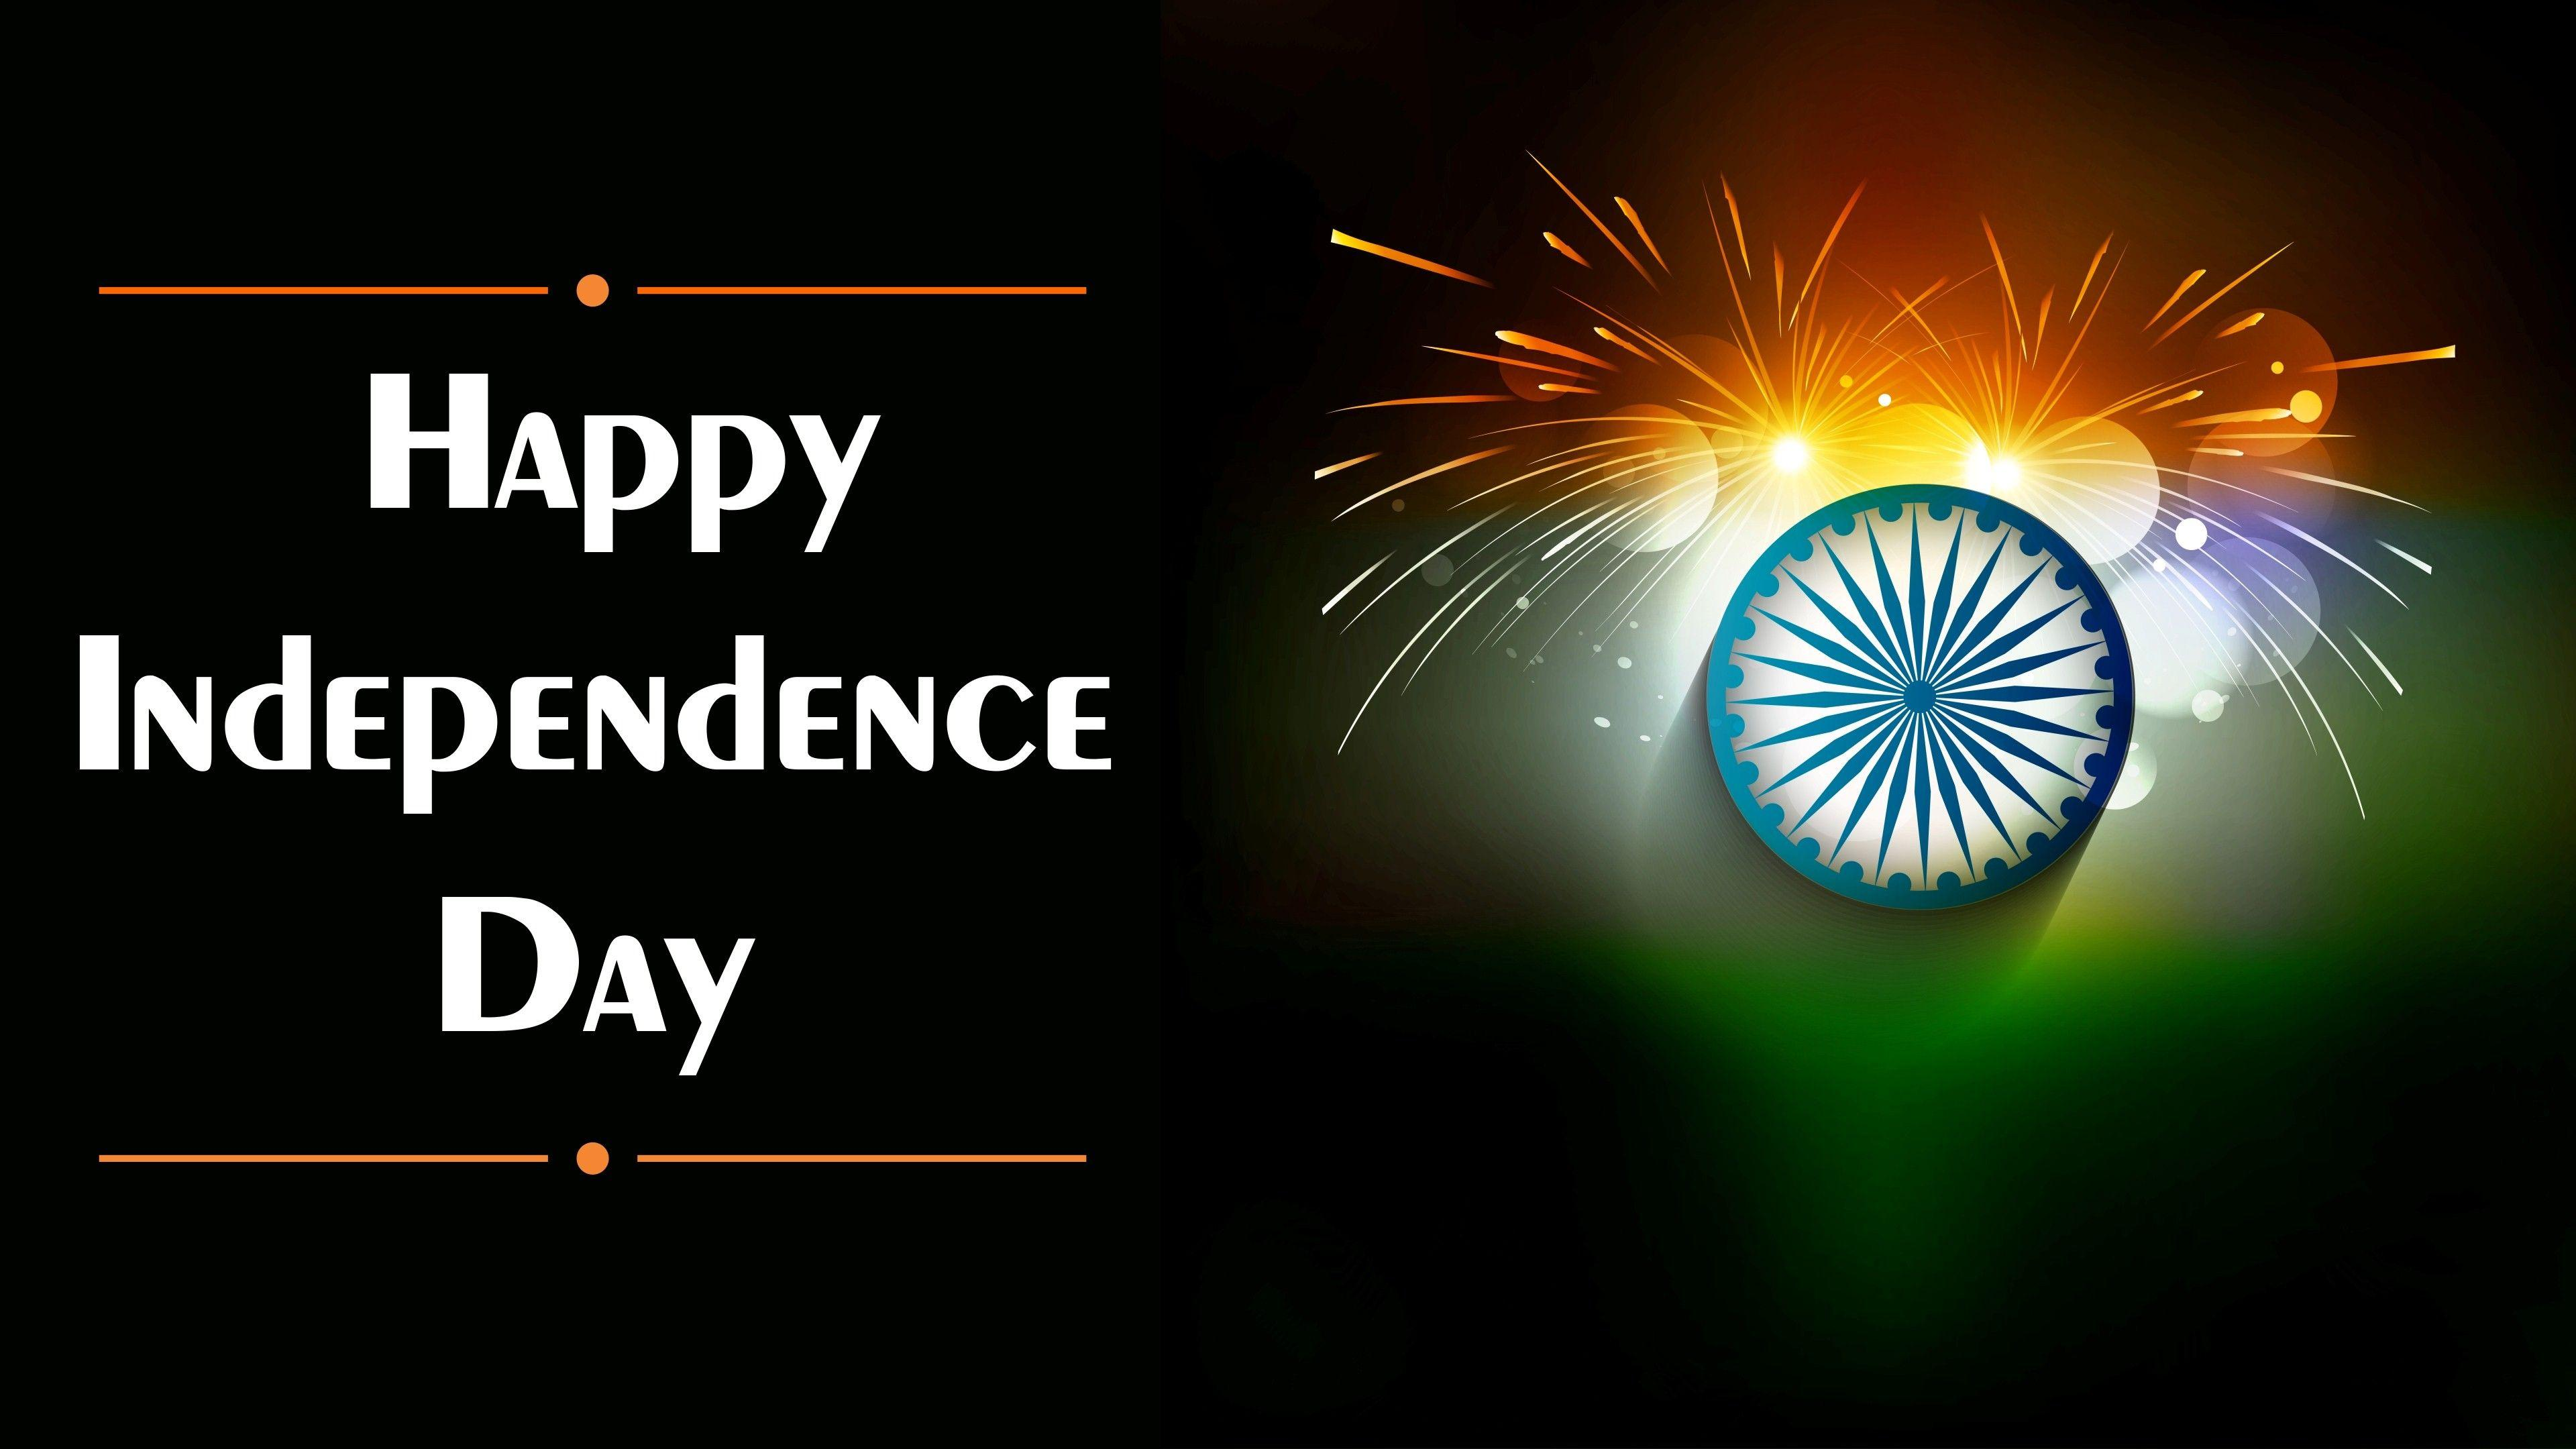 Happy Independence Day HD Wallpapers - Wallpaper Cave